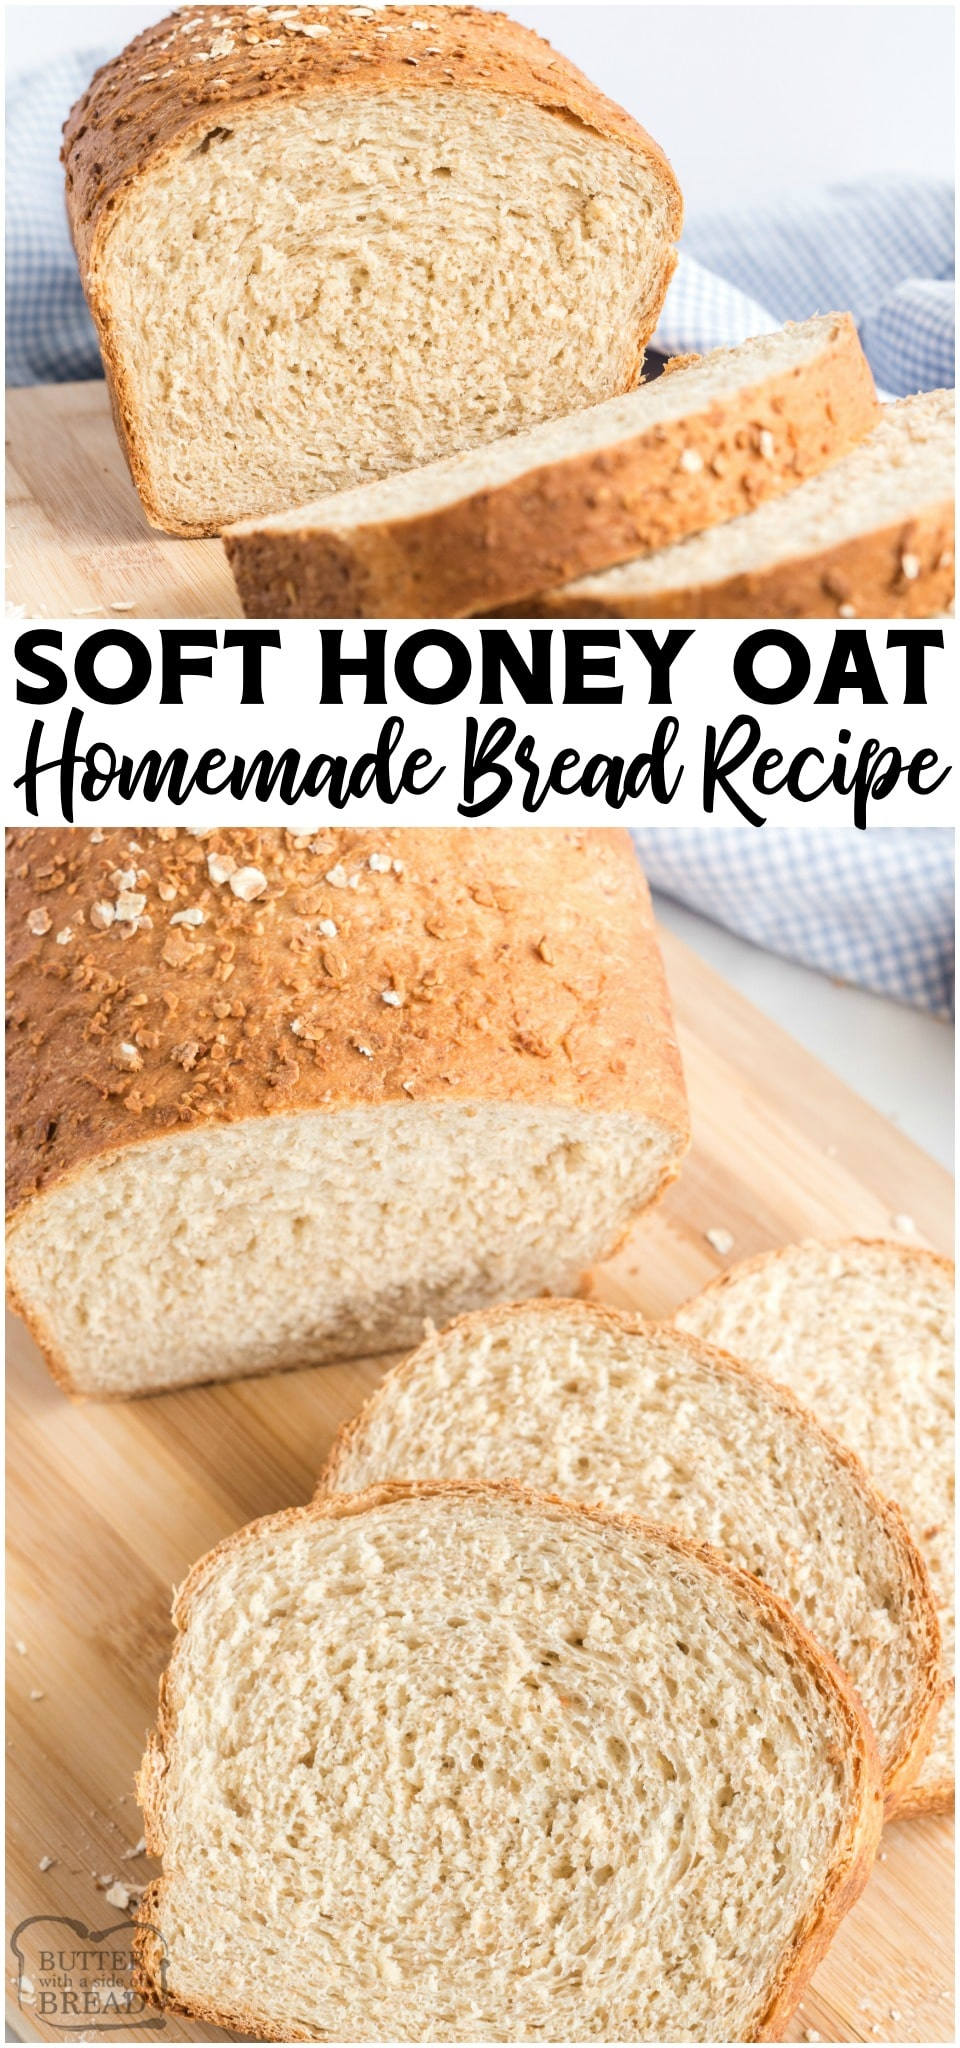 Honey Oat Bread recipe made with part whole wheat flour, honey, milk and oats. It's one of my favorite homemade bread recipes! #bread #homemade #honey #oats #wholewheat #howtomakebread #breadrecipe from BUTTER WITH A SIDE OF BREAD